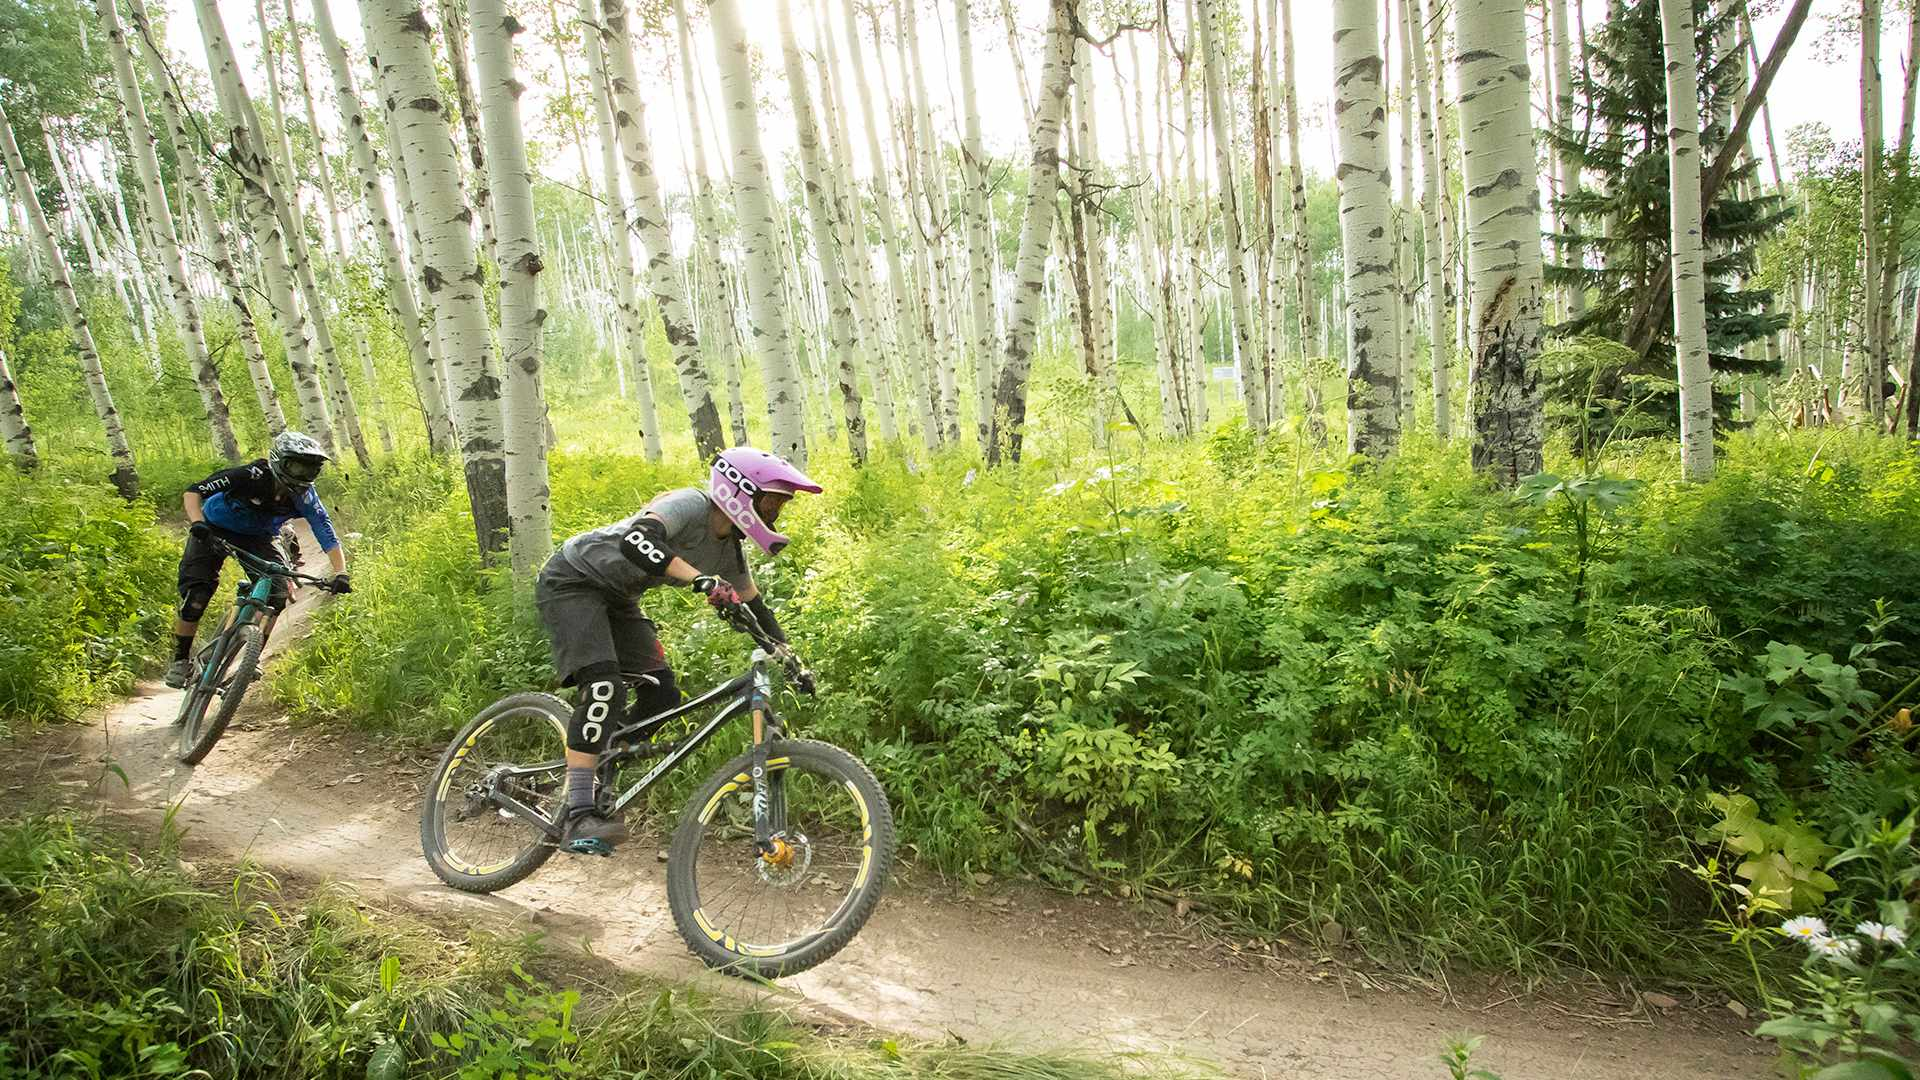 Mountain Biking - Colorado's first IMBA Gold-Level Ride Center is located right out the door connecting over 300 miles of flowy singletrack in Snowmass and Roaring Fork Valley.